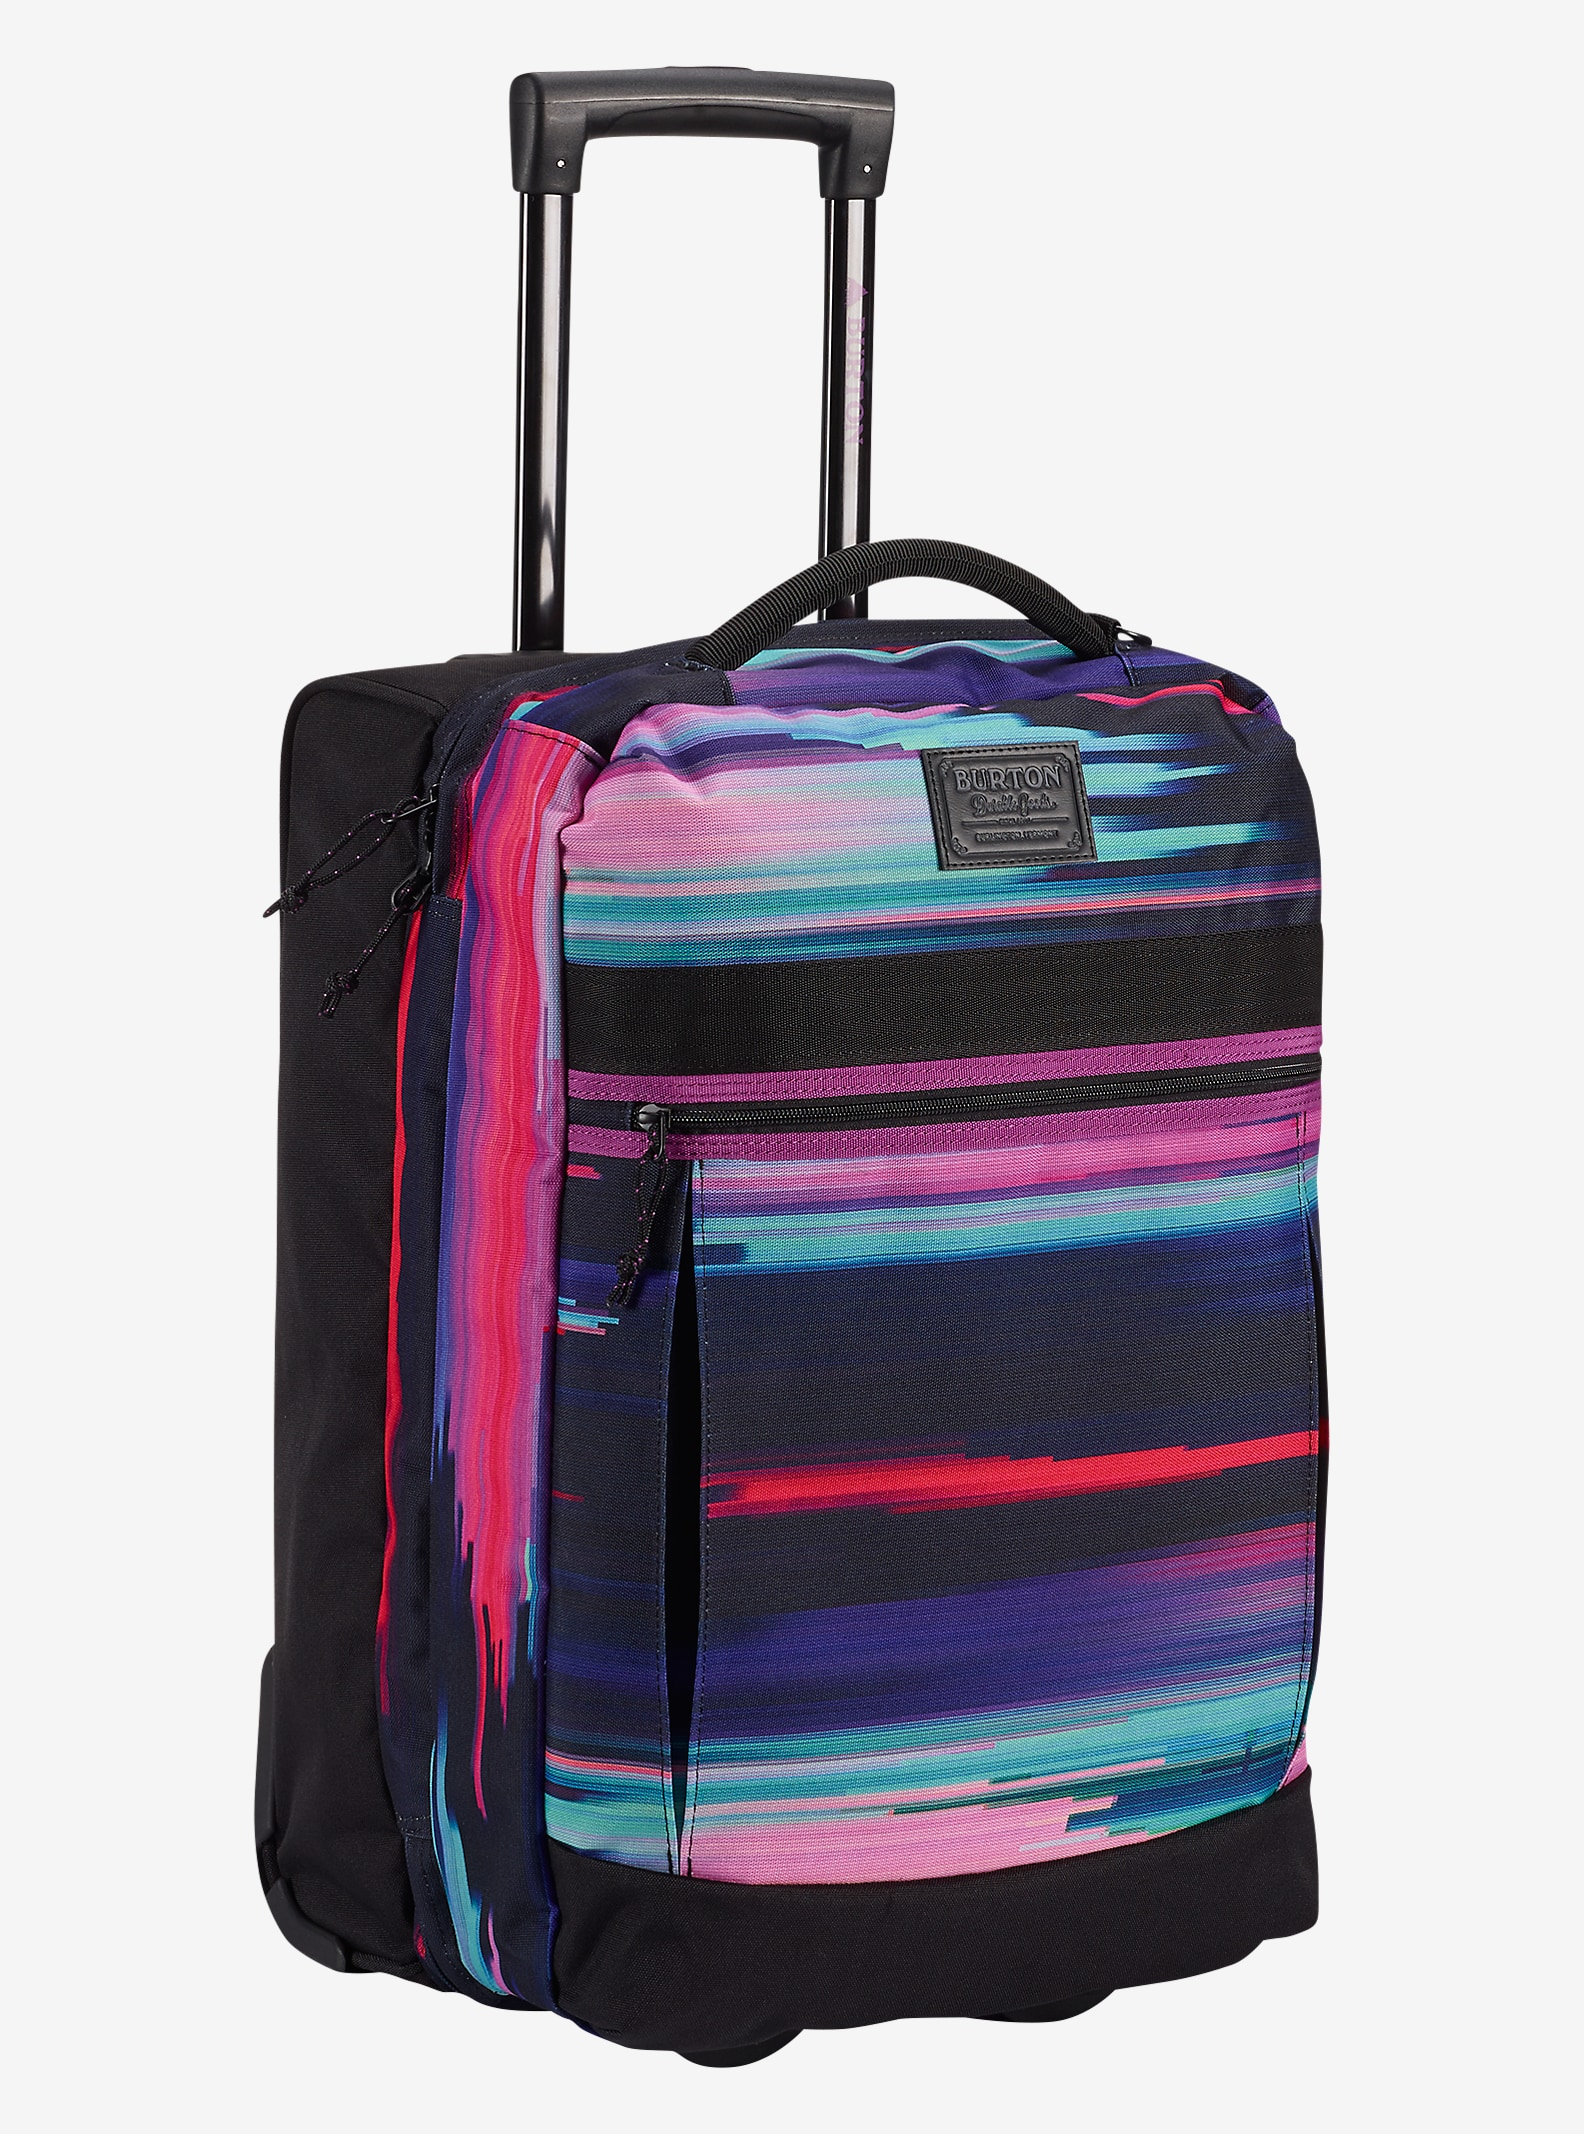 Burton Overnighter Roller Travel Bag shown in Glitch Print